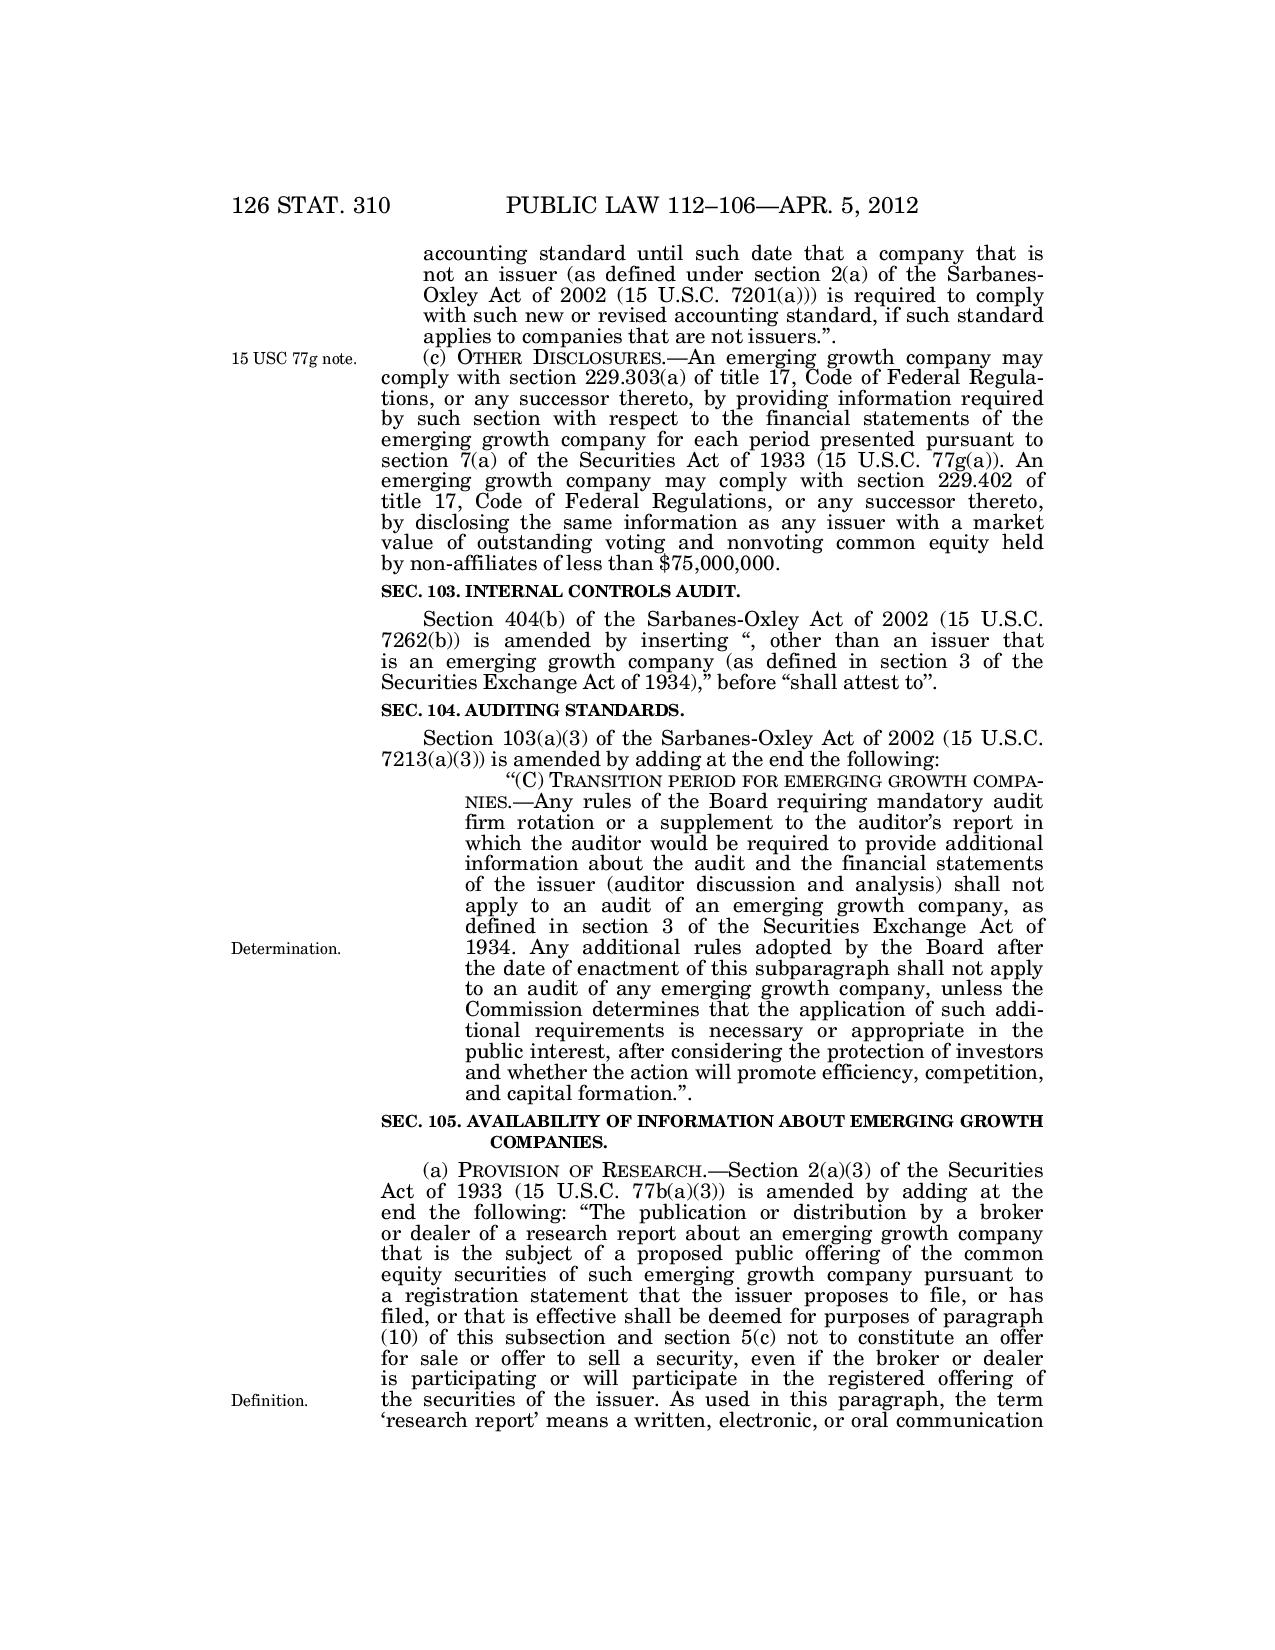 331653864-The-Jumpstart-Our-Business-Startups-Act-JOBS-Act-April-5-of-2012-page-006.jpg